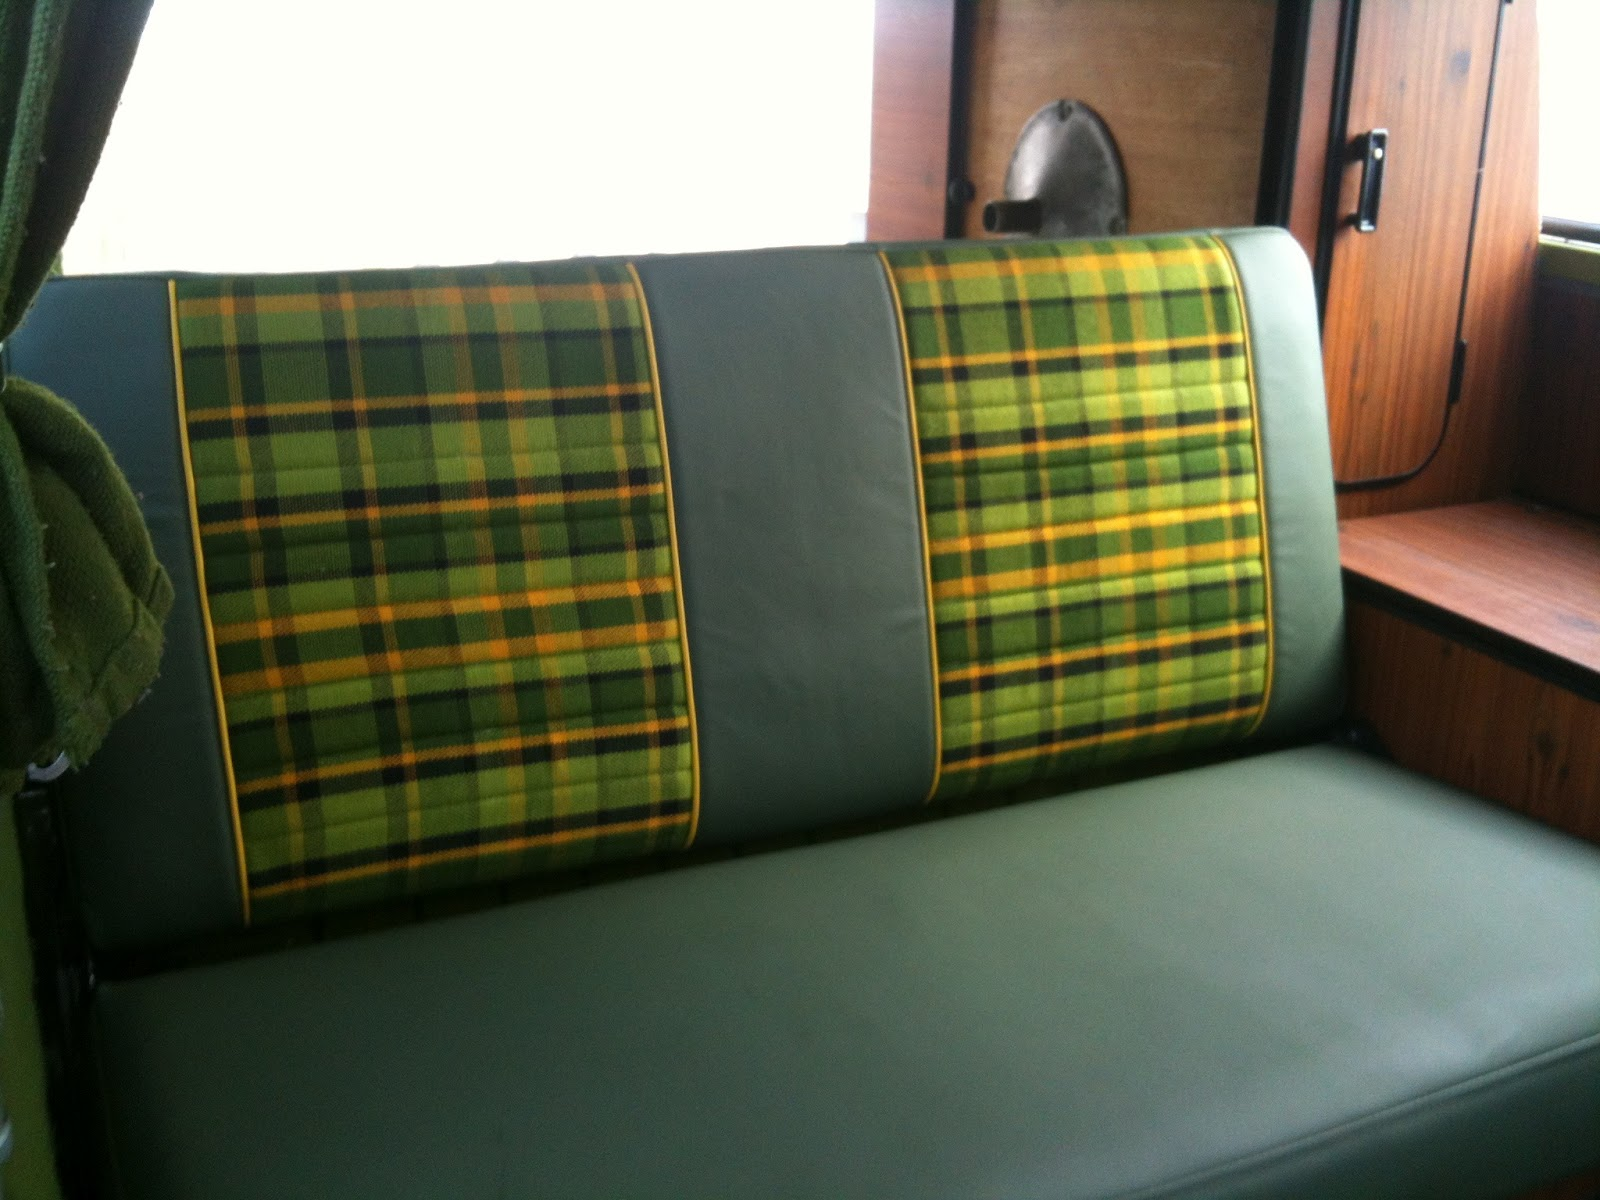 Vintage Surfari Wagons Repurposed Upholstery For 1979 Vw Bus